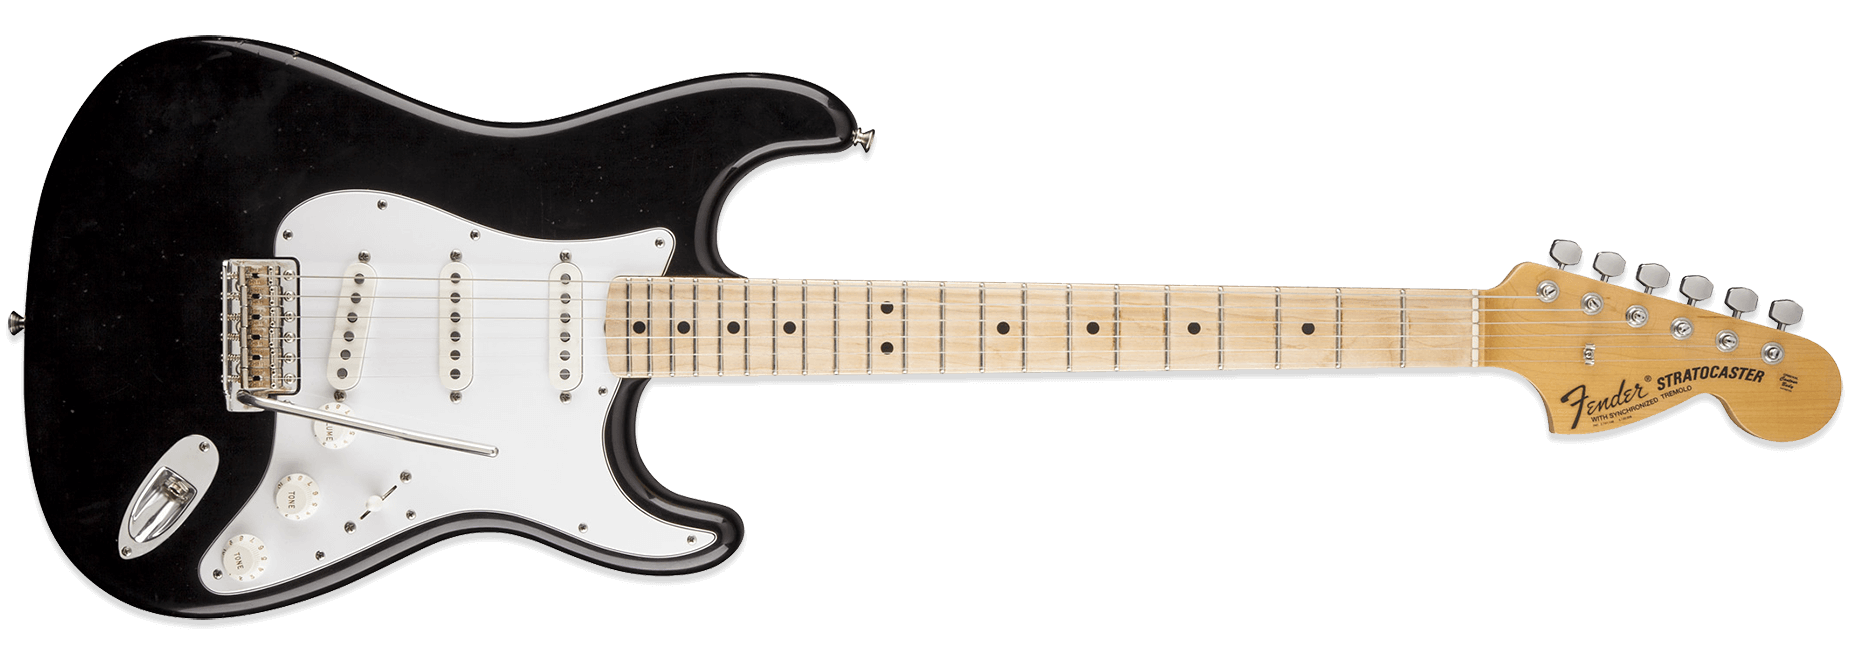 hight resolution of fender custom shop ritchie blackmore tribute stratocaster